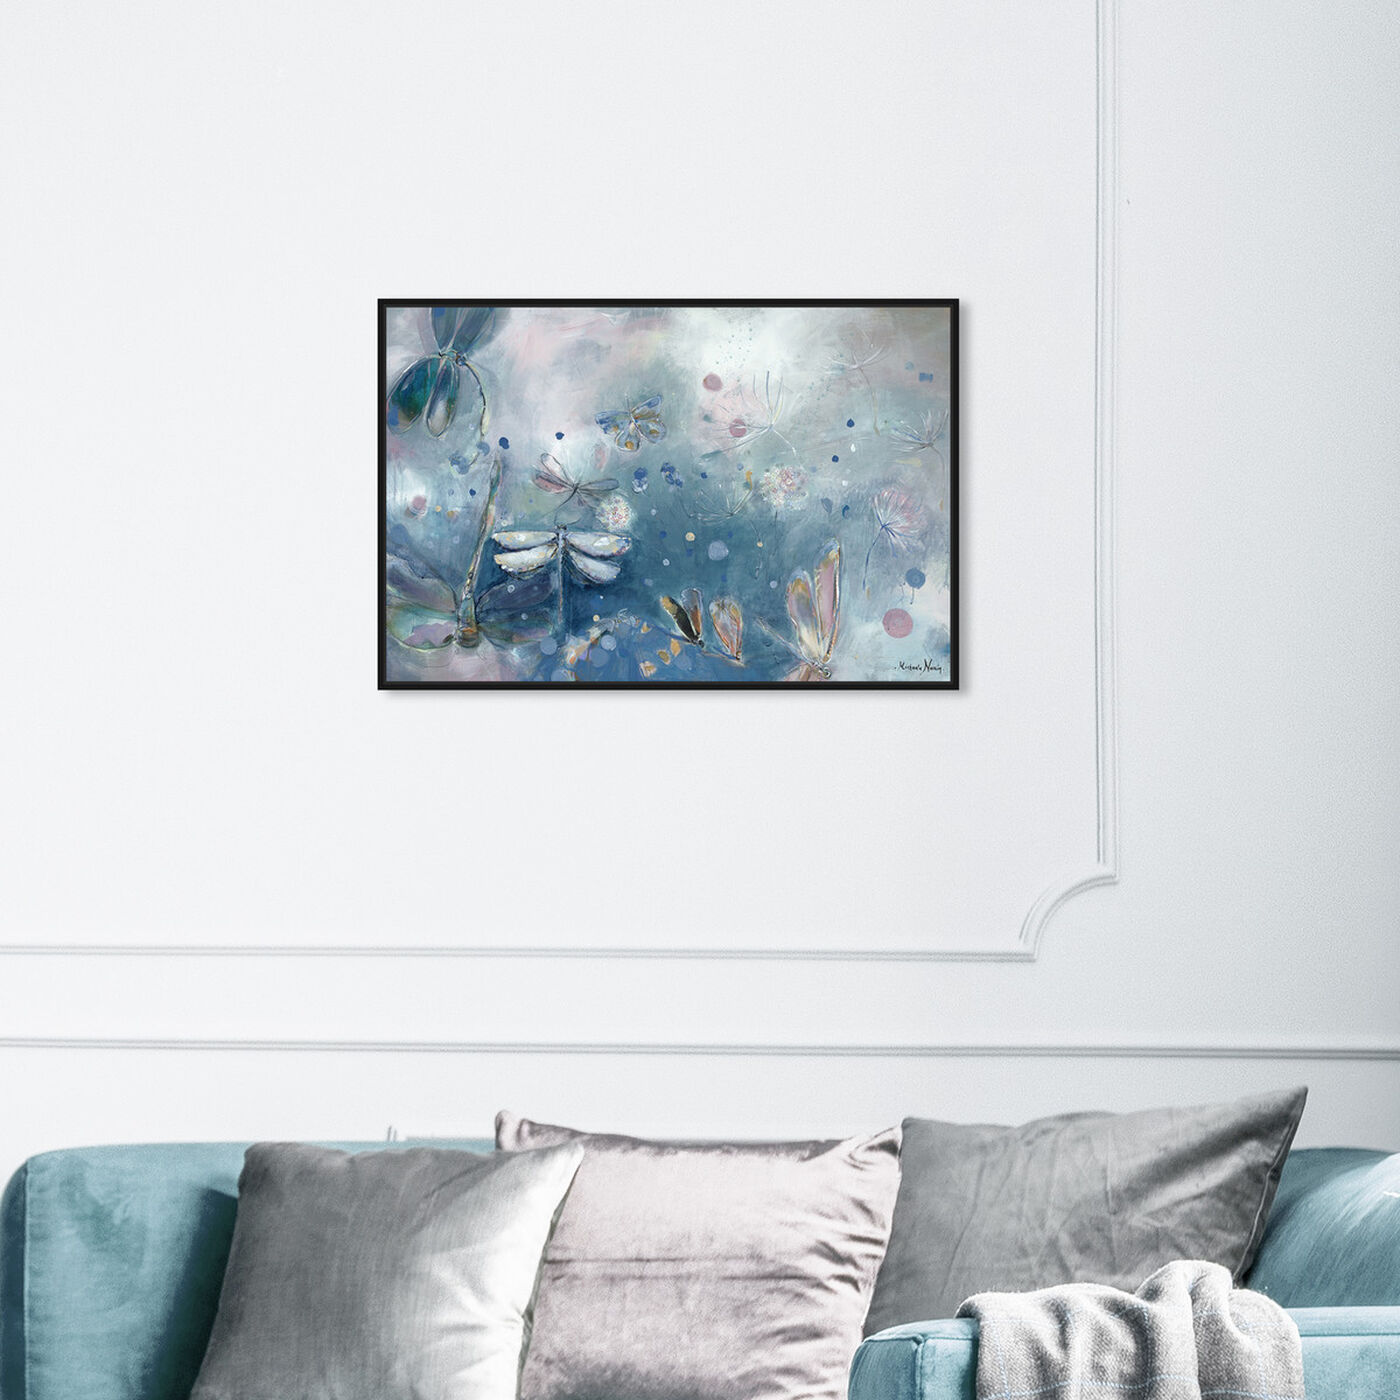 Hanging view of Michaela Nessim - A dragonfly dream featuring animals and insects art.